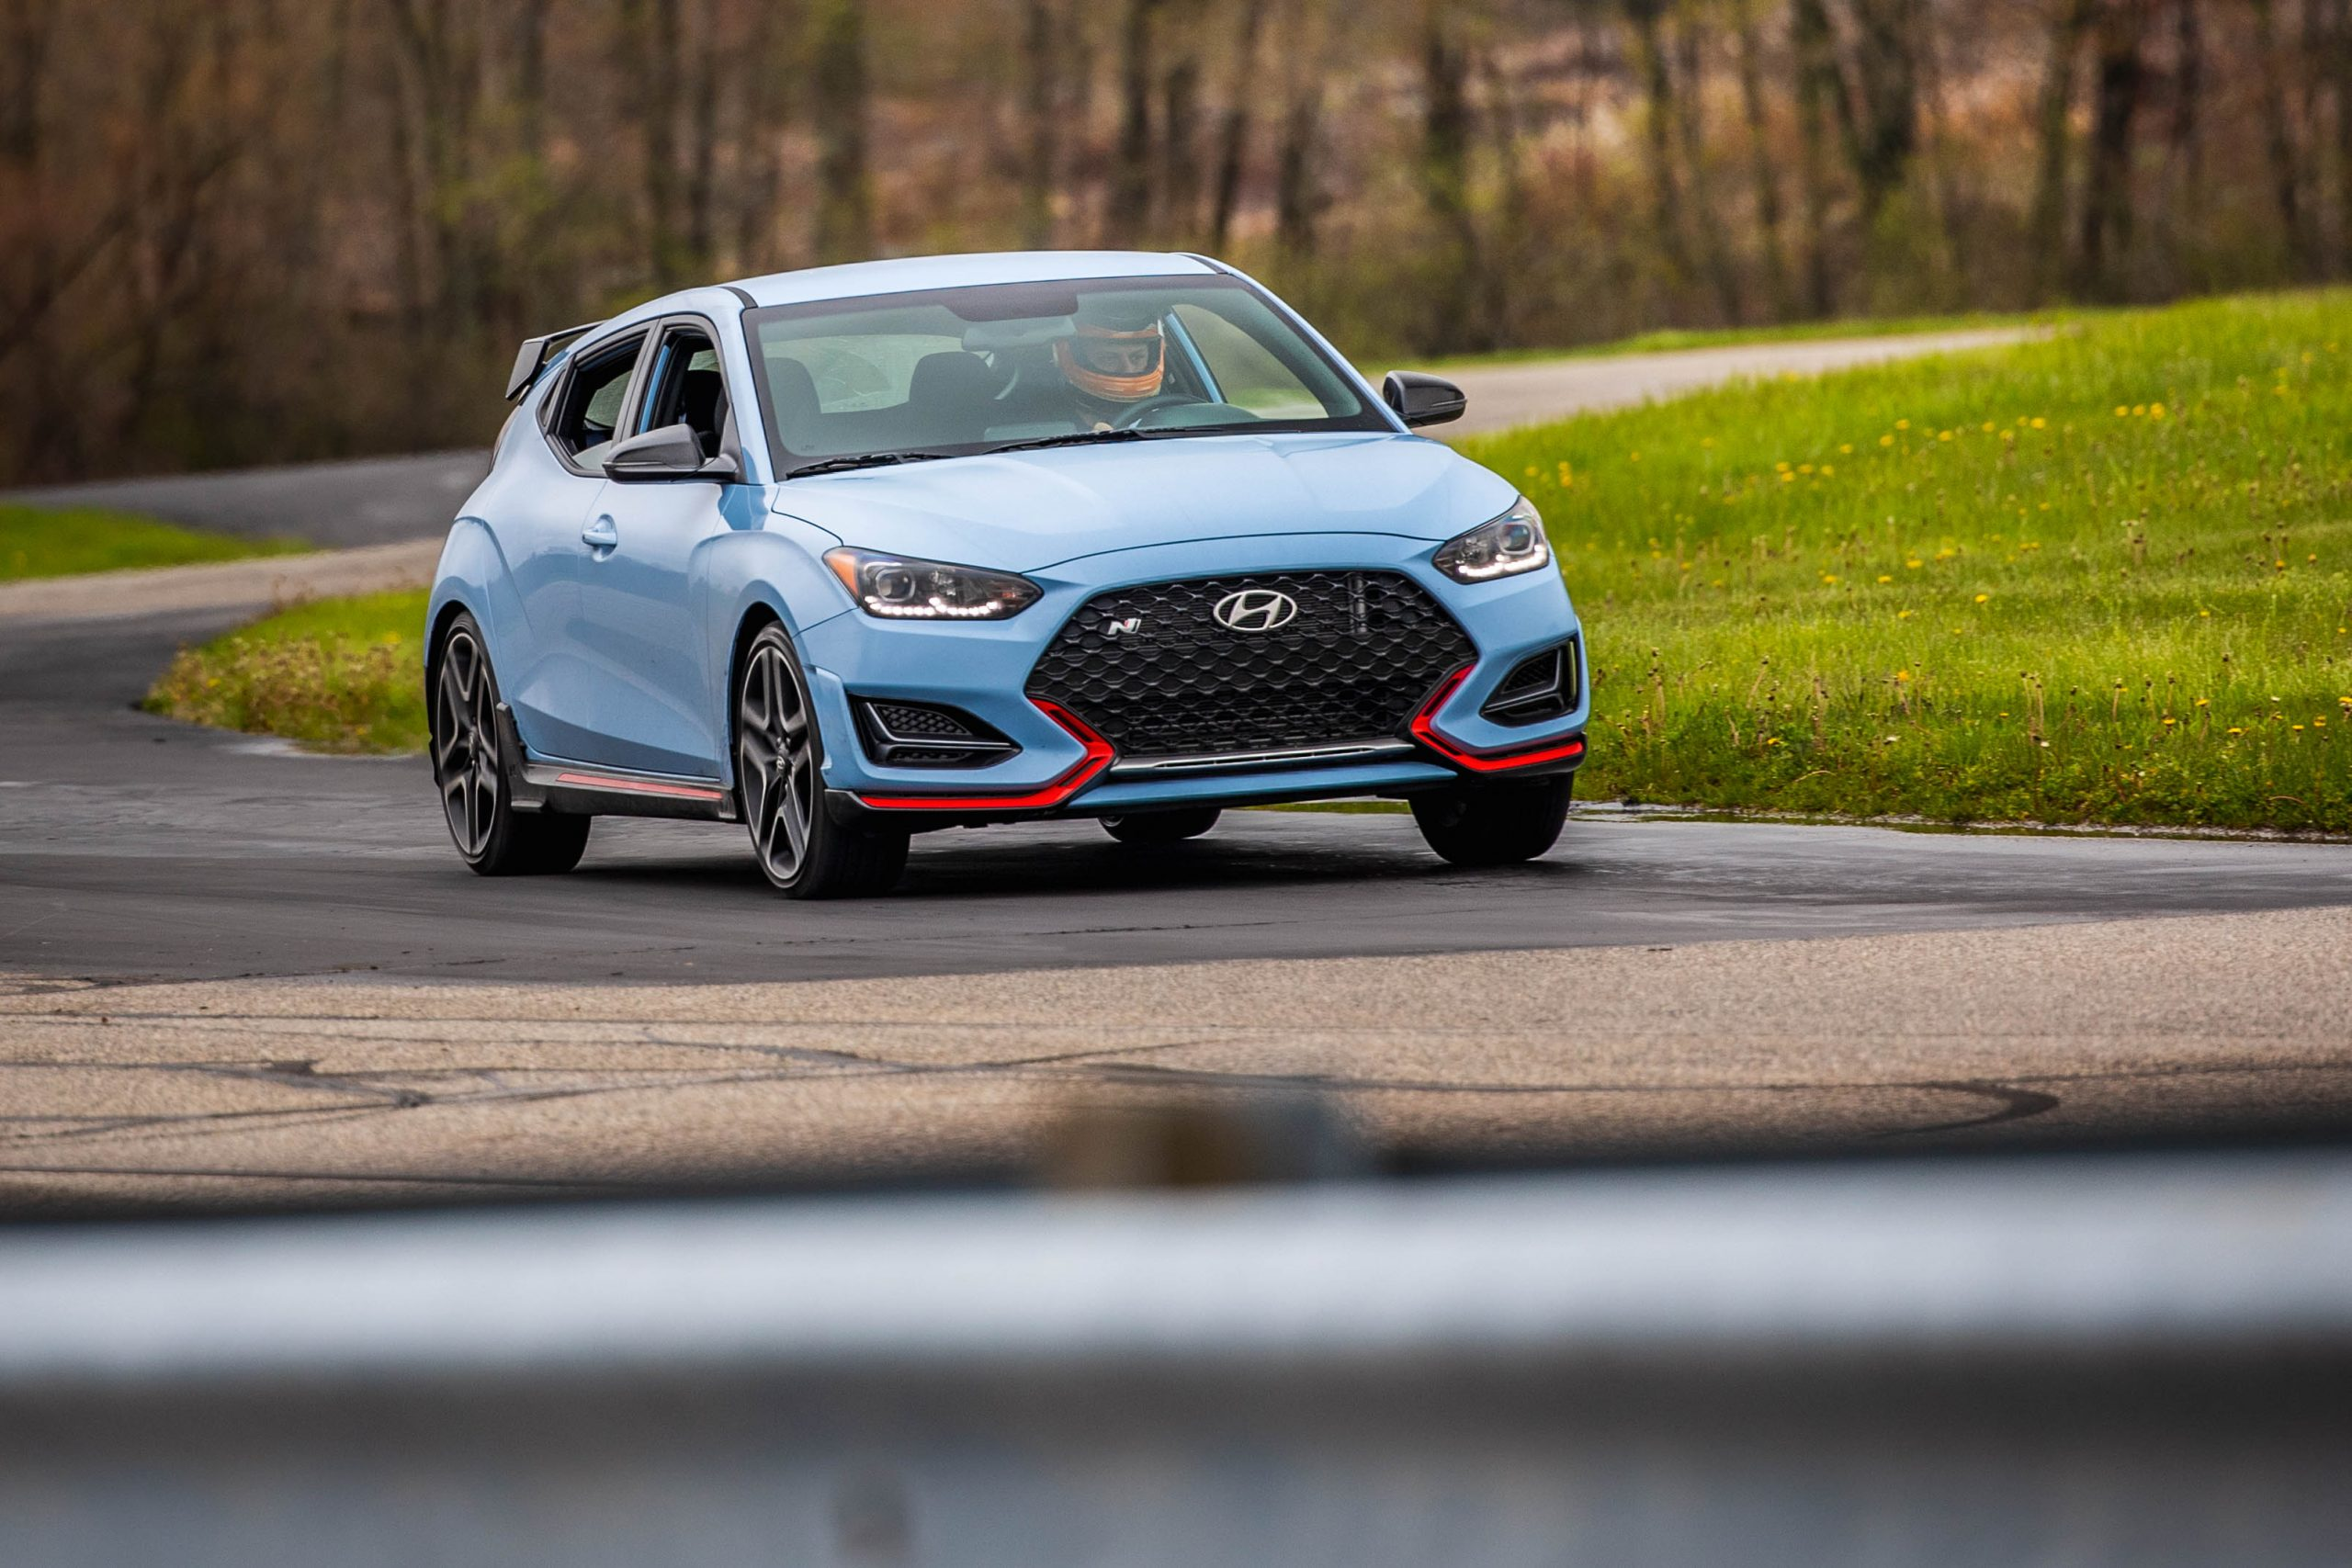 2020 Hyundai Veloster N in motion